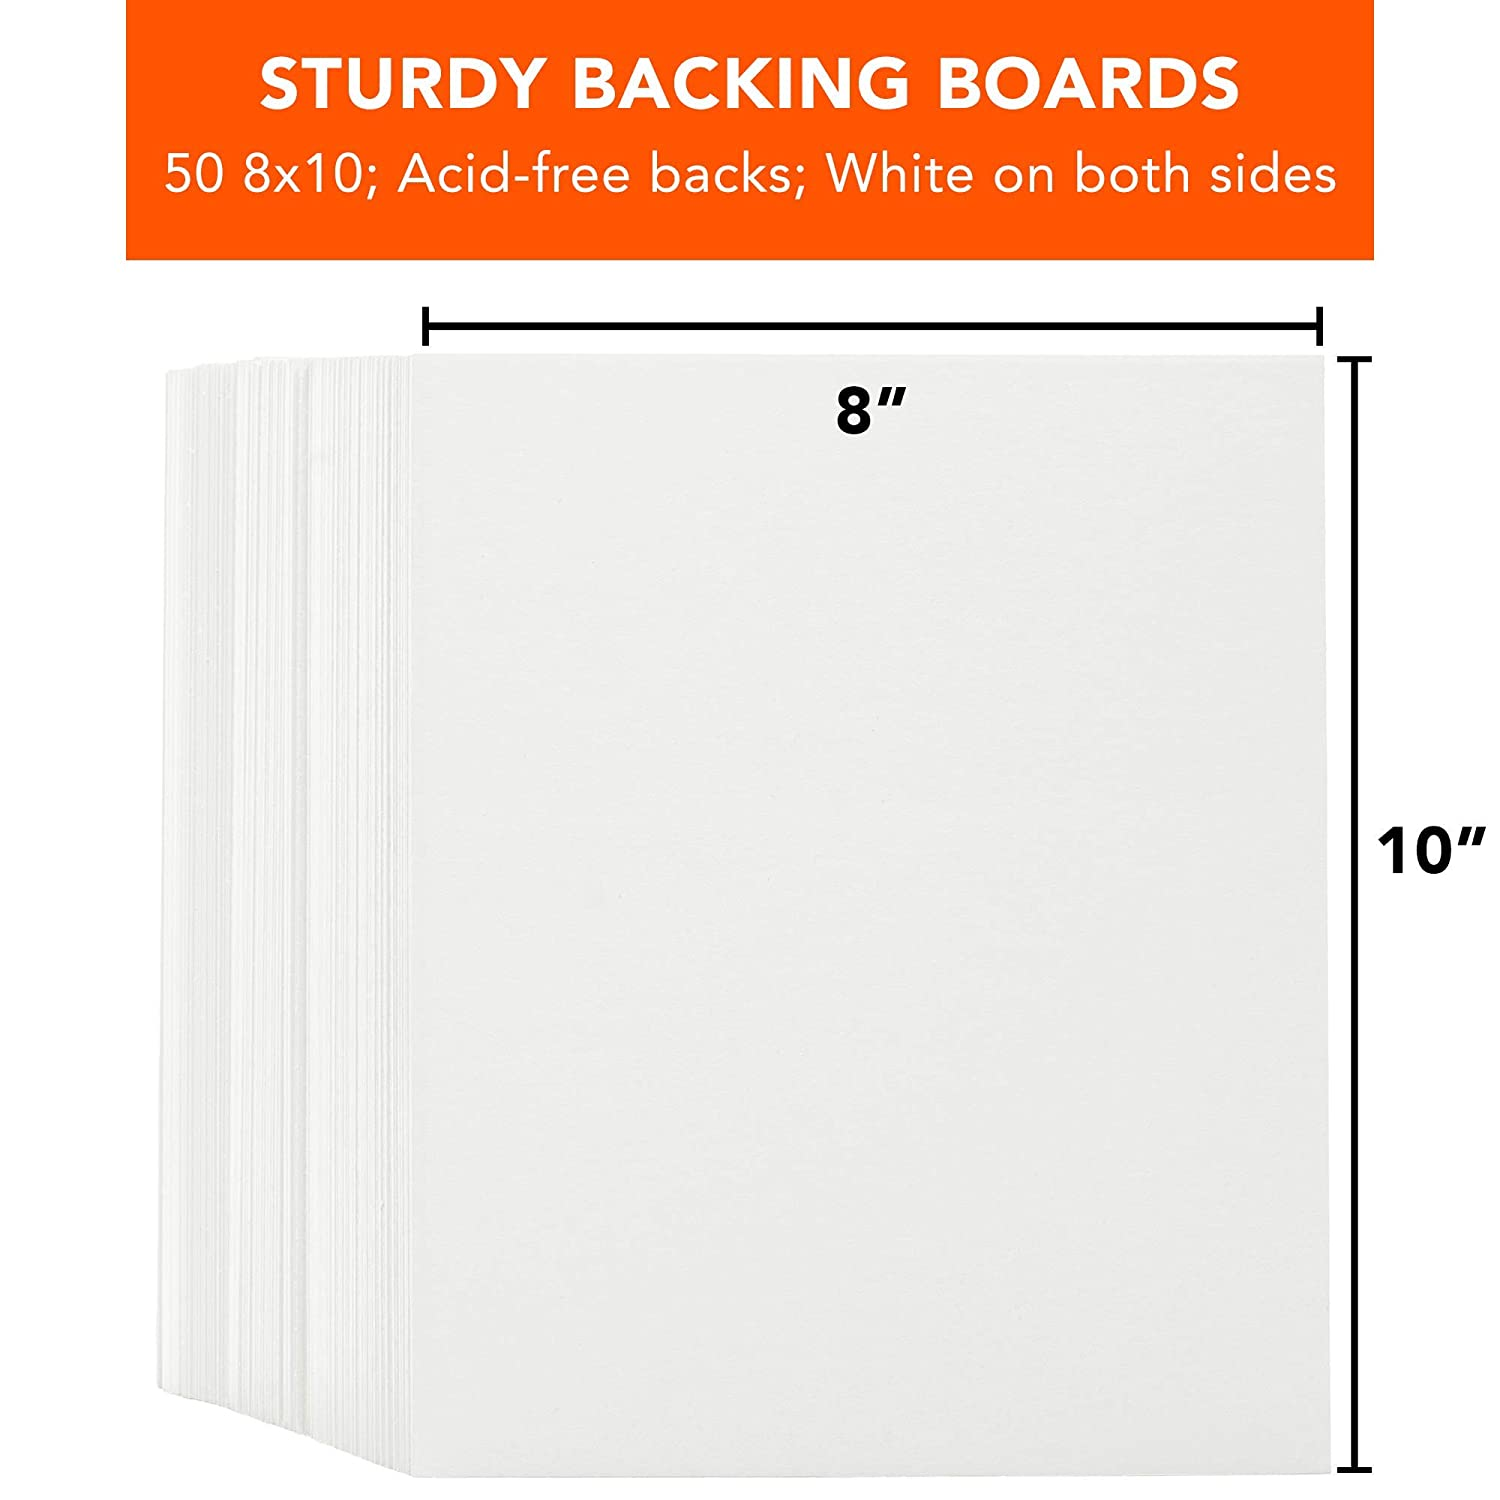 Photos and Frames Backing Only Pack of 50 8 x 10 Inch Pre-Cut White Backing Boards for Picture Mats Mattes 8 x 10 50-Pack Backs Only